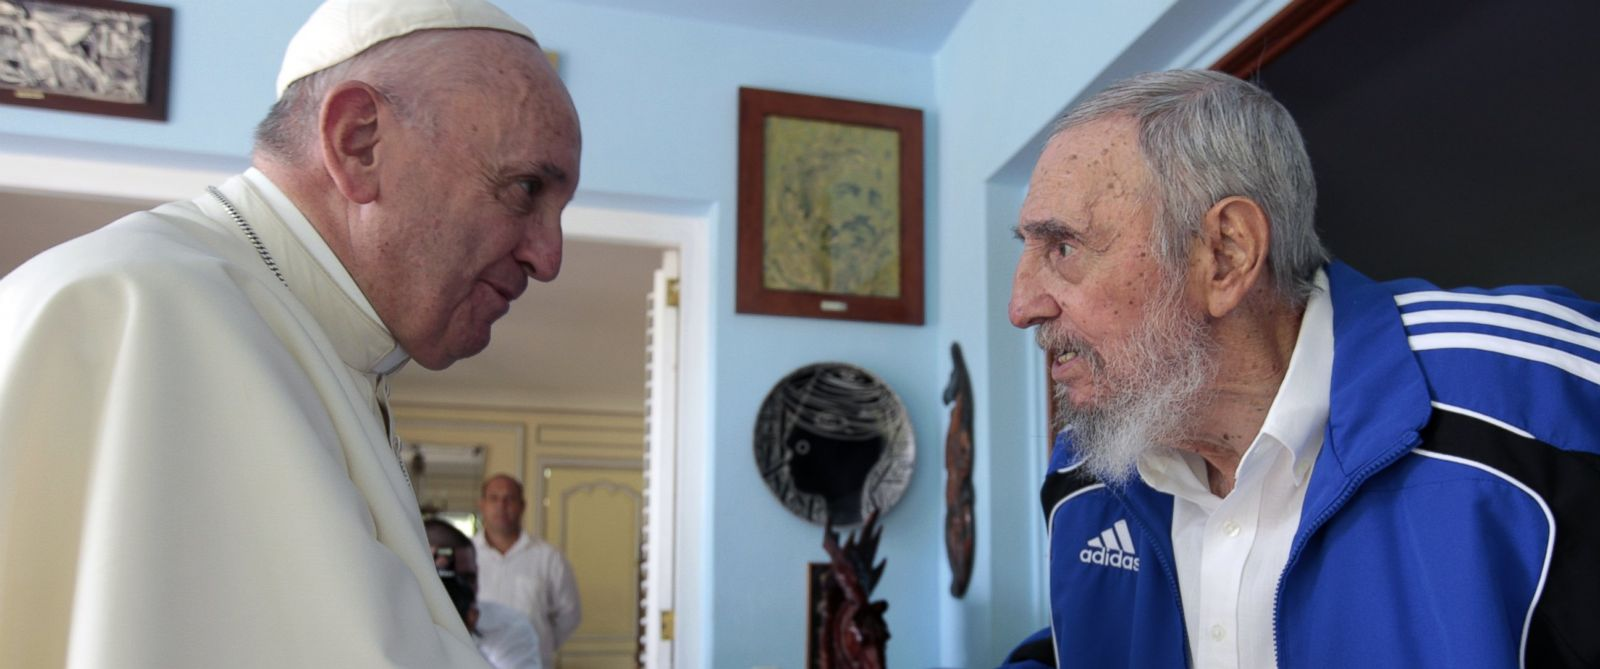 Pope Francis in Cuba: pontiff arrives in Santiago – as it happened